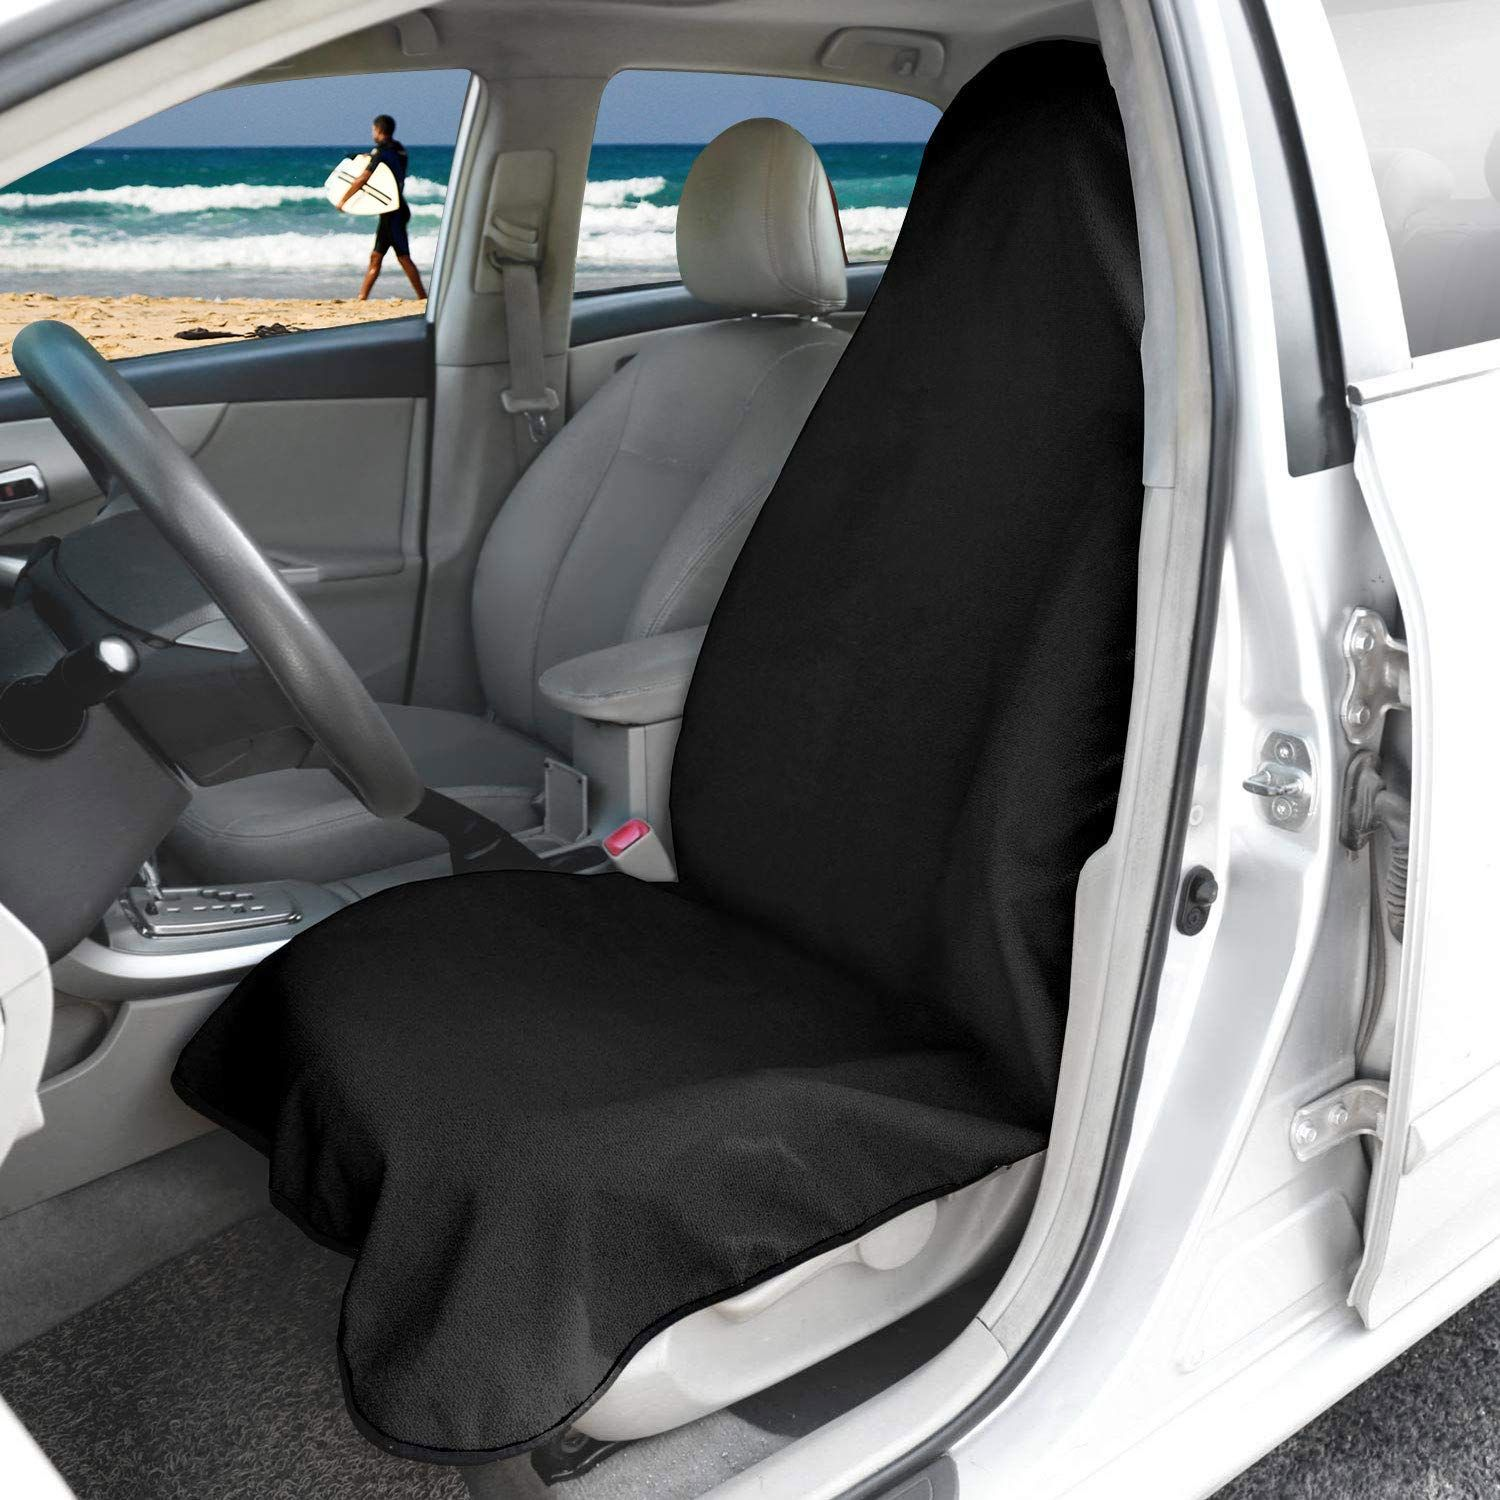 Hiveseen Universal Waterproof Car Front Seat Cover Made of Durable Sweat Towel,